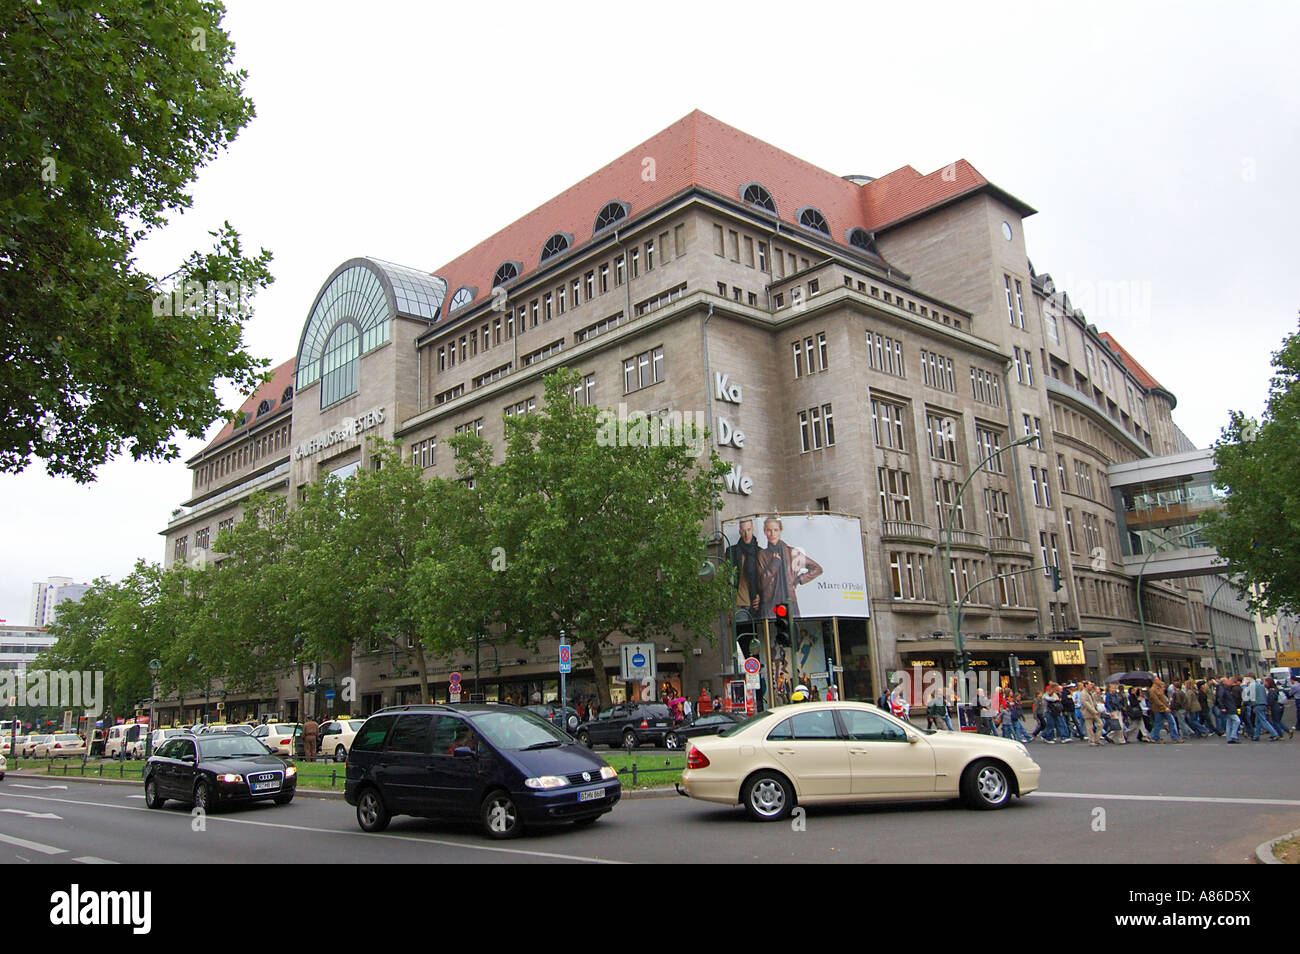 kadewe department store berlin germany stock photo royalty free image 12002773 alamy. Black Bedroom Furniture Sets. Home Design Ideas